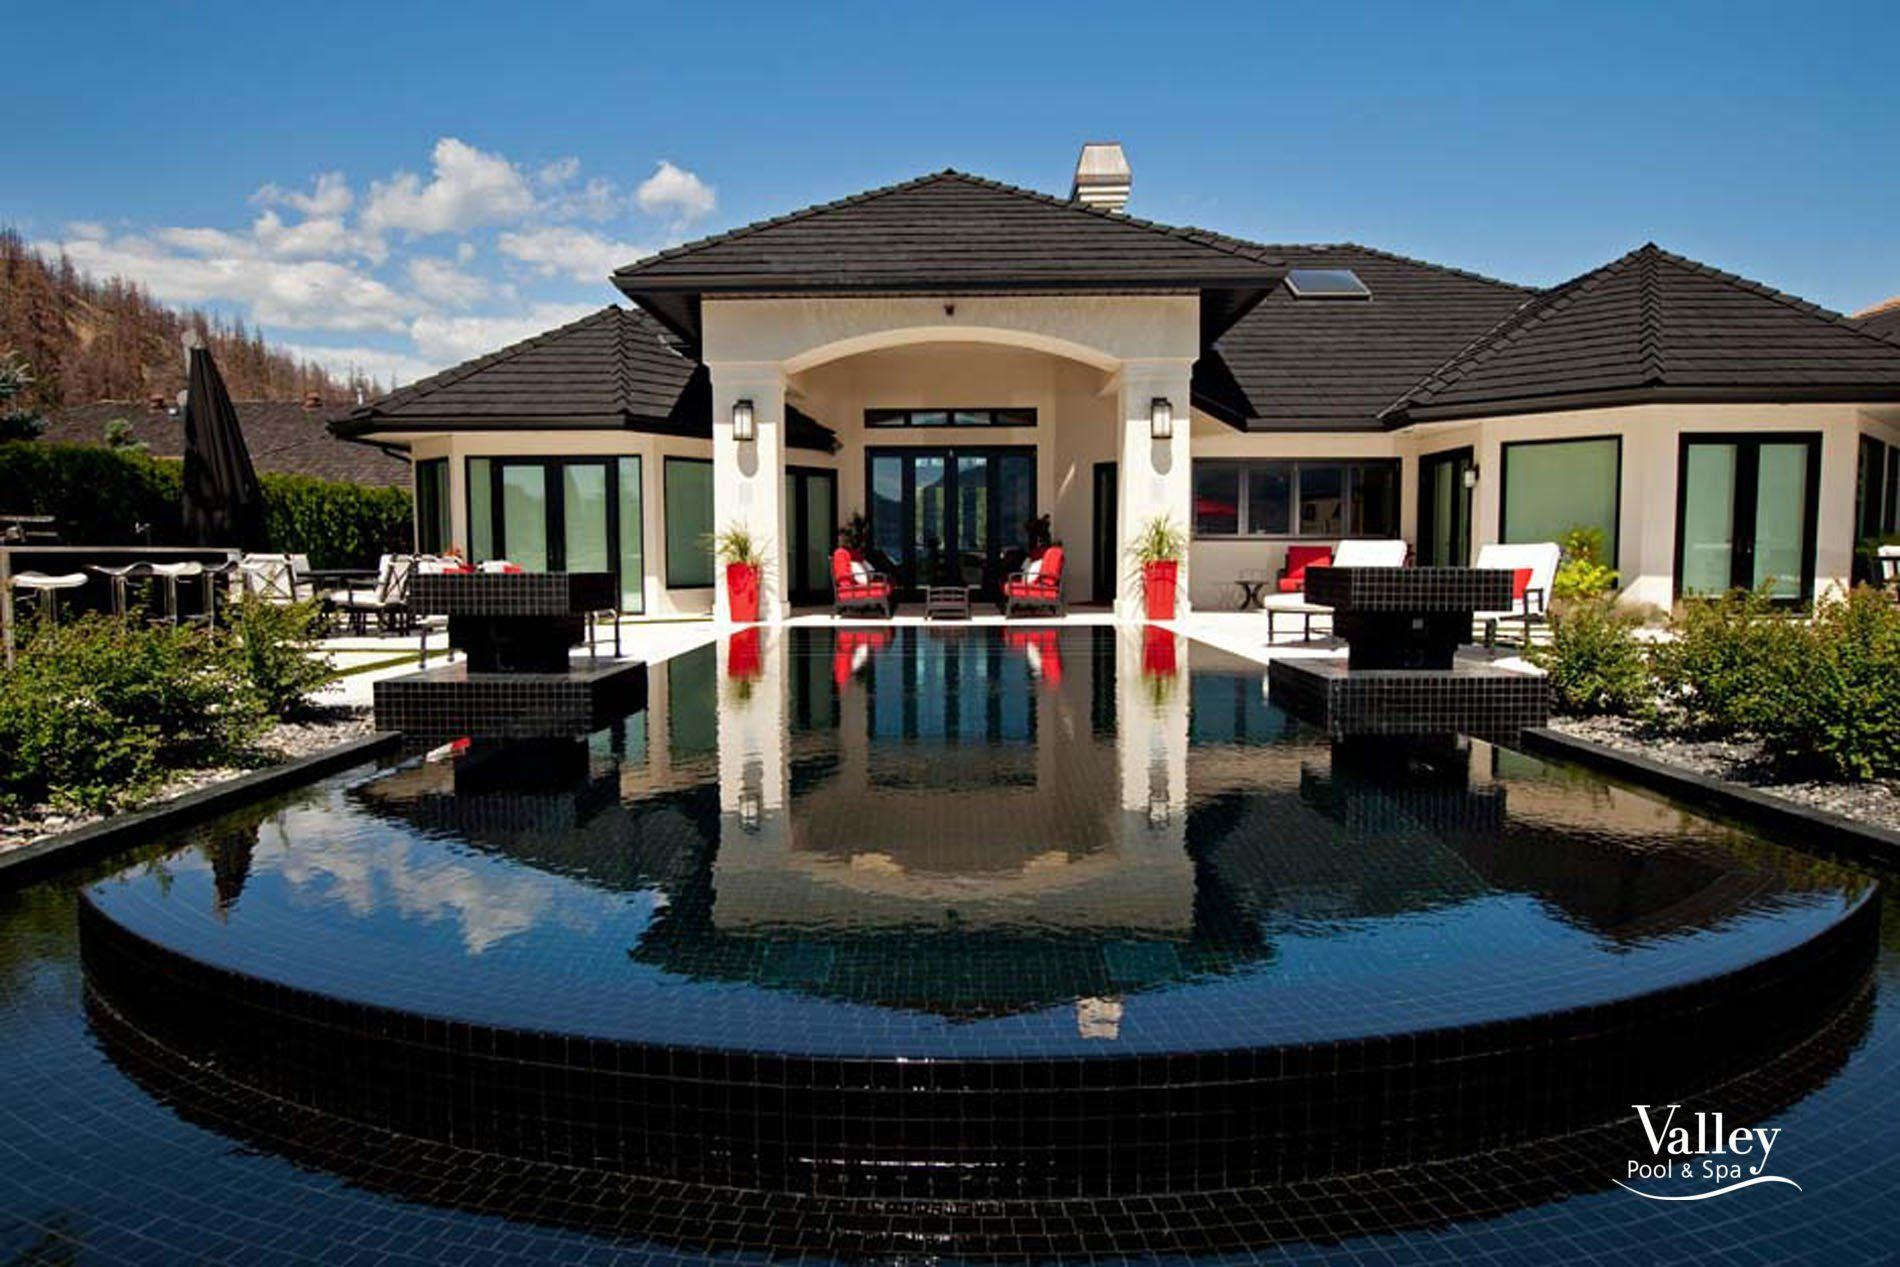 Black Pool Tiles add to a Modern Home Design and Backyard with Drama